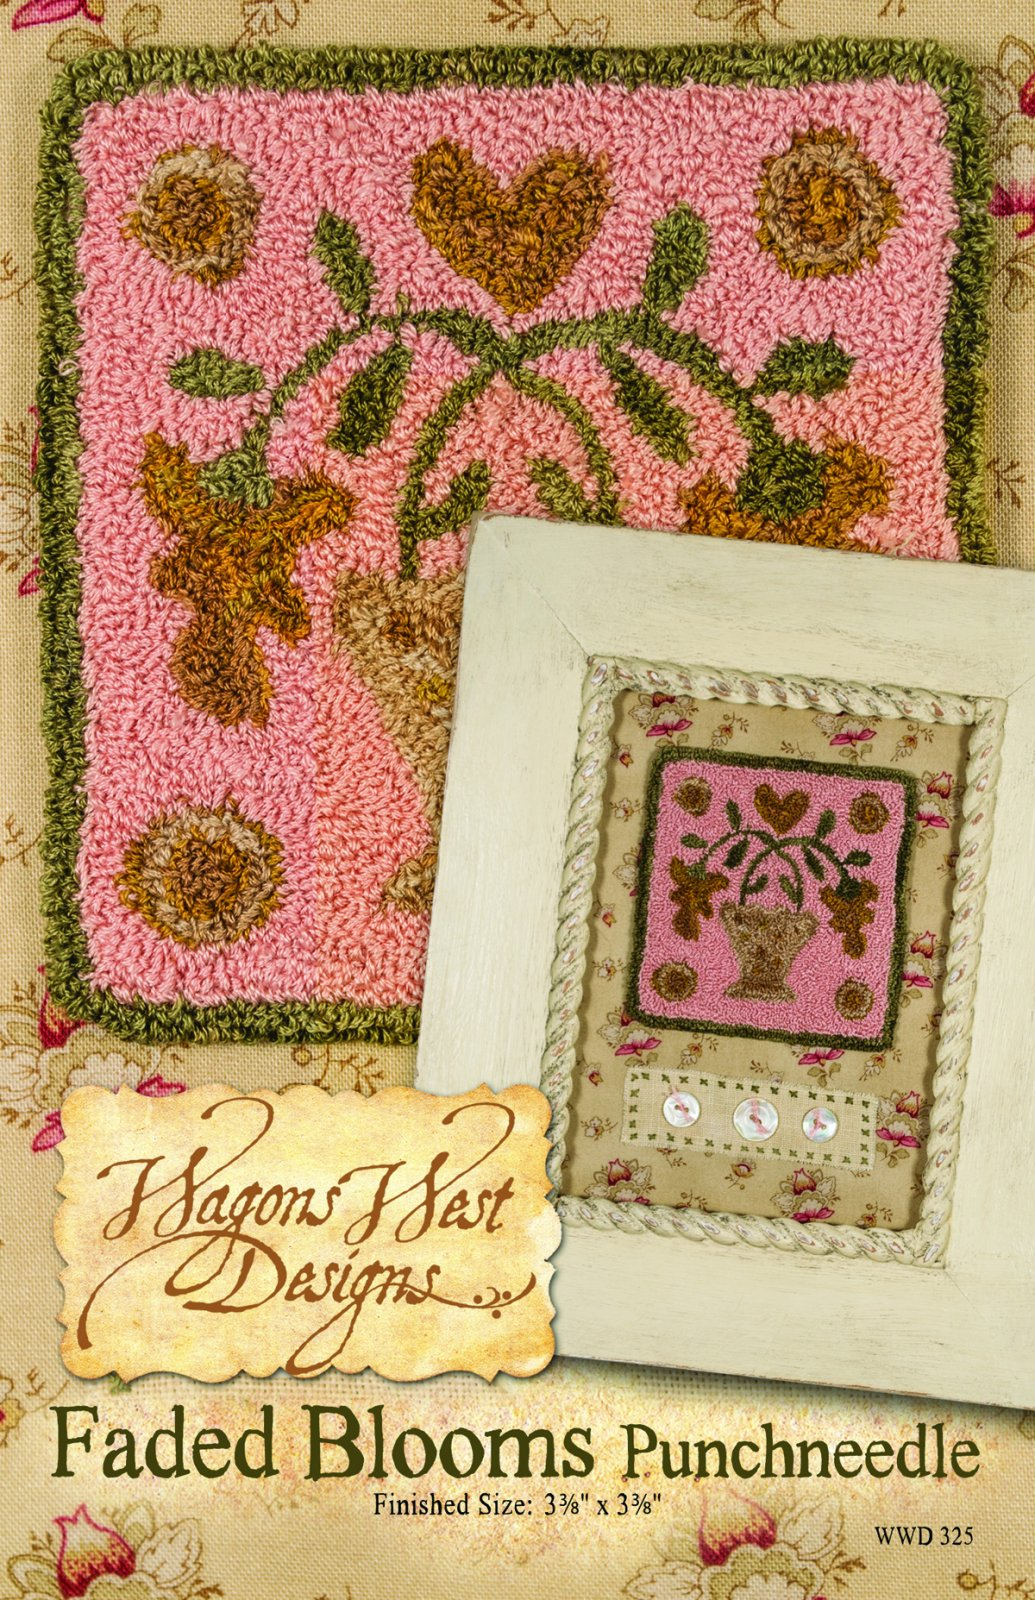 Faded Blooms Punchneedle